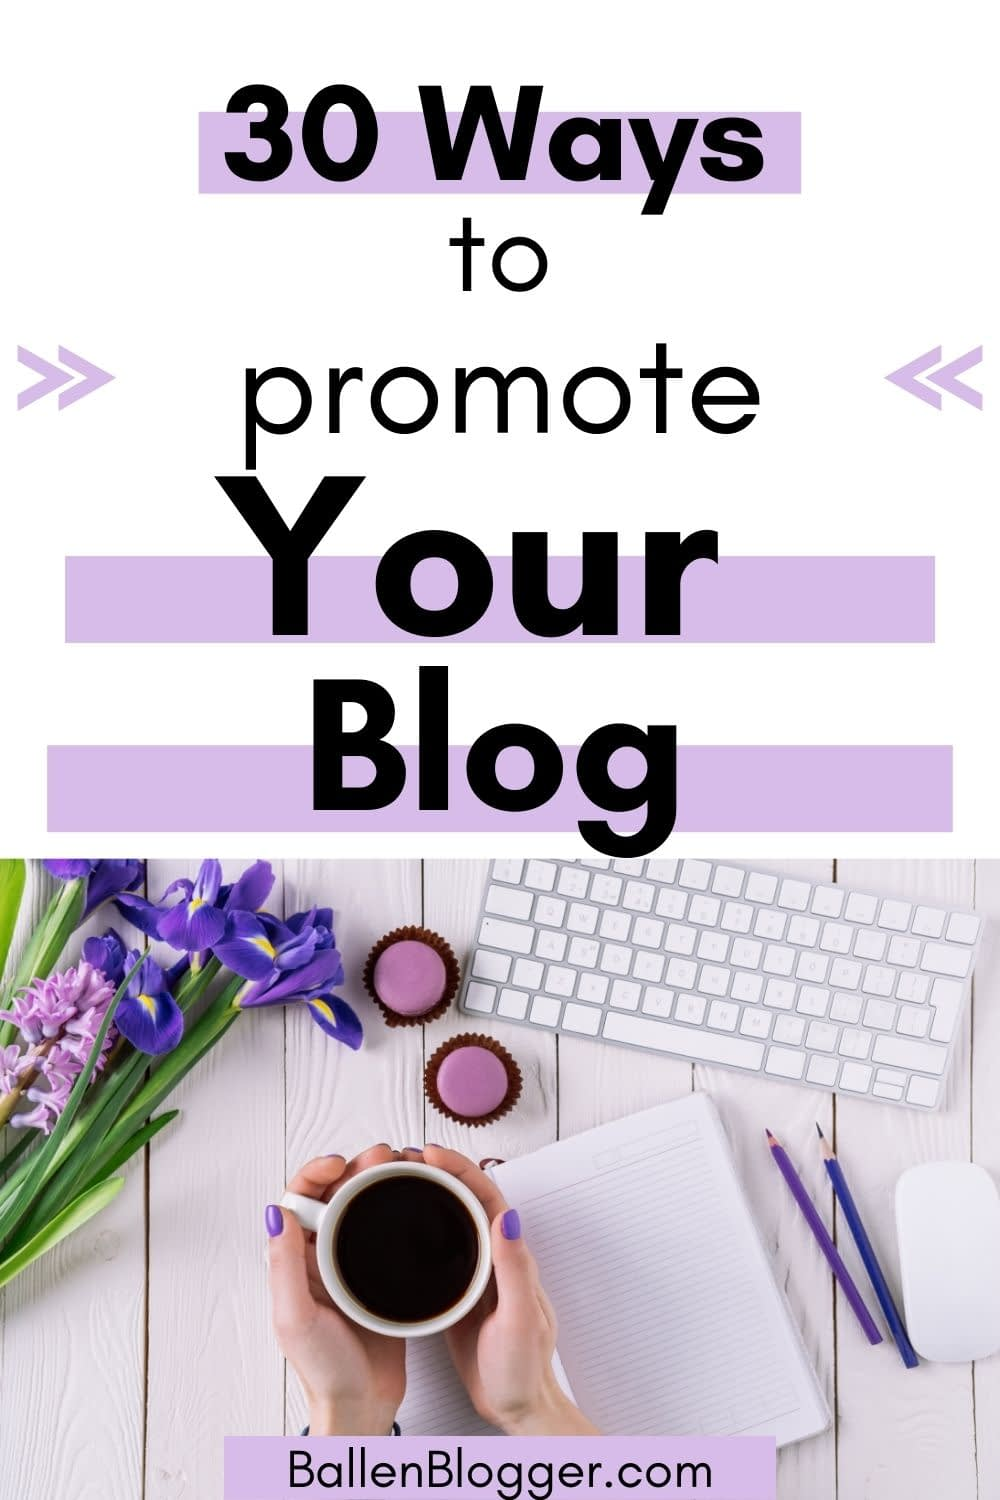 Here are ways to promote your blog to generate traffic. Today, thanks to social media, I'm able to get traffic to my blog on the same day I create a post. With  Pinterest, Facebook, Youtube, Instagram, and other channels, it's easy to see traffic happen quickly if you promote it.